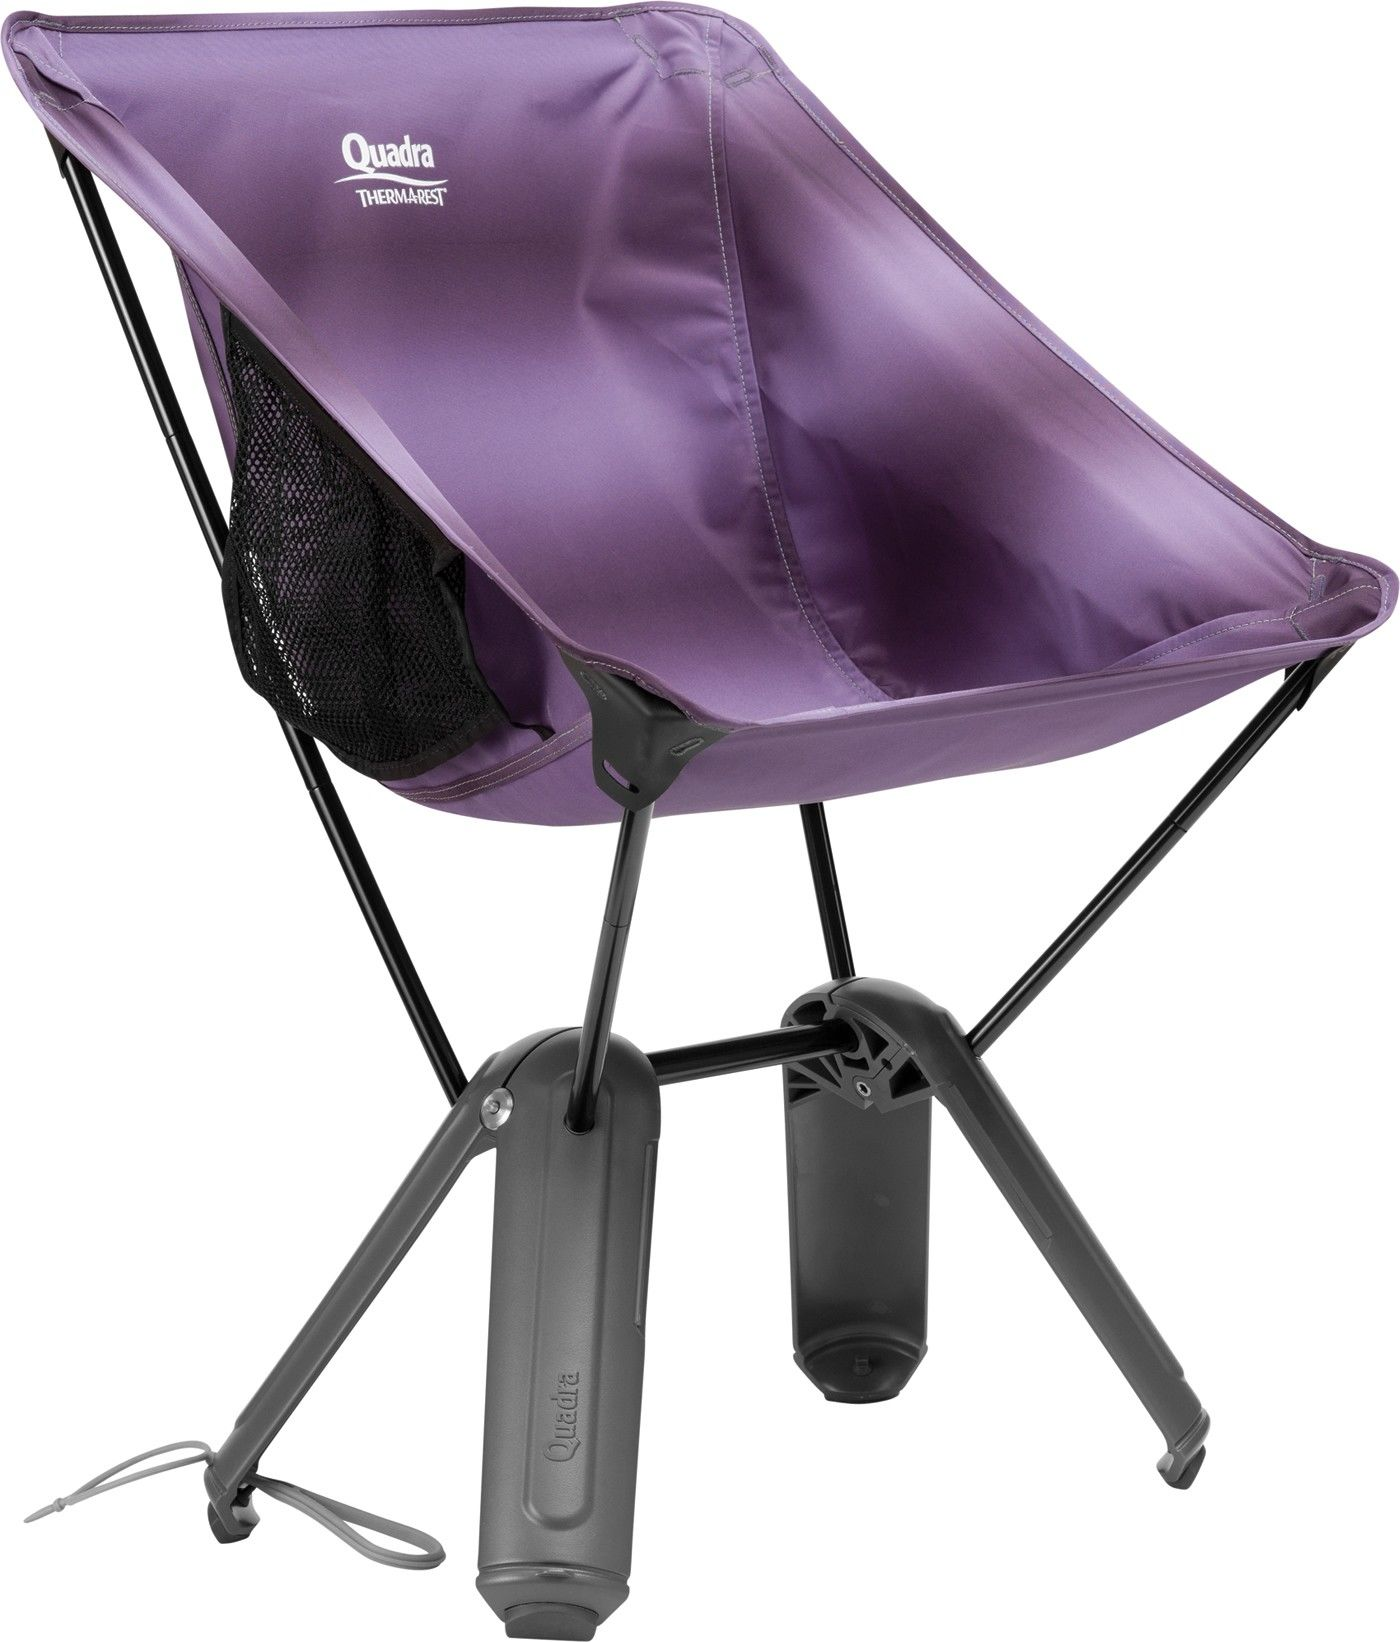 Therm-a-Rest Quadra Chair | Größe One Size |  Stuhl